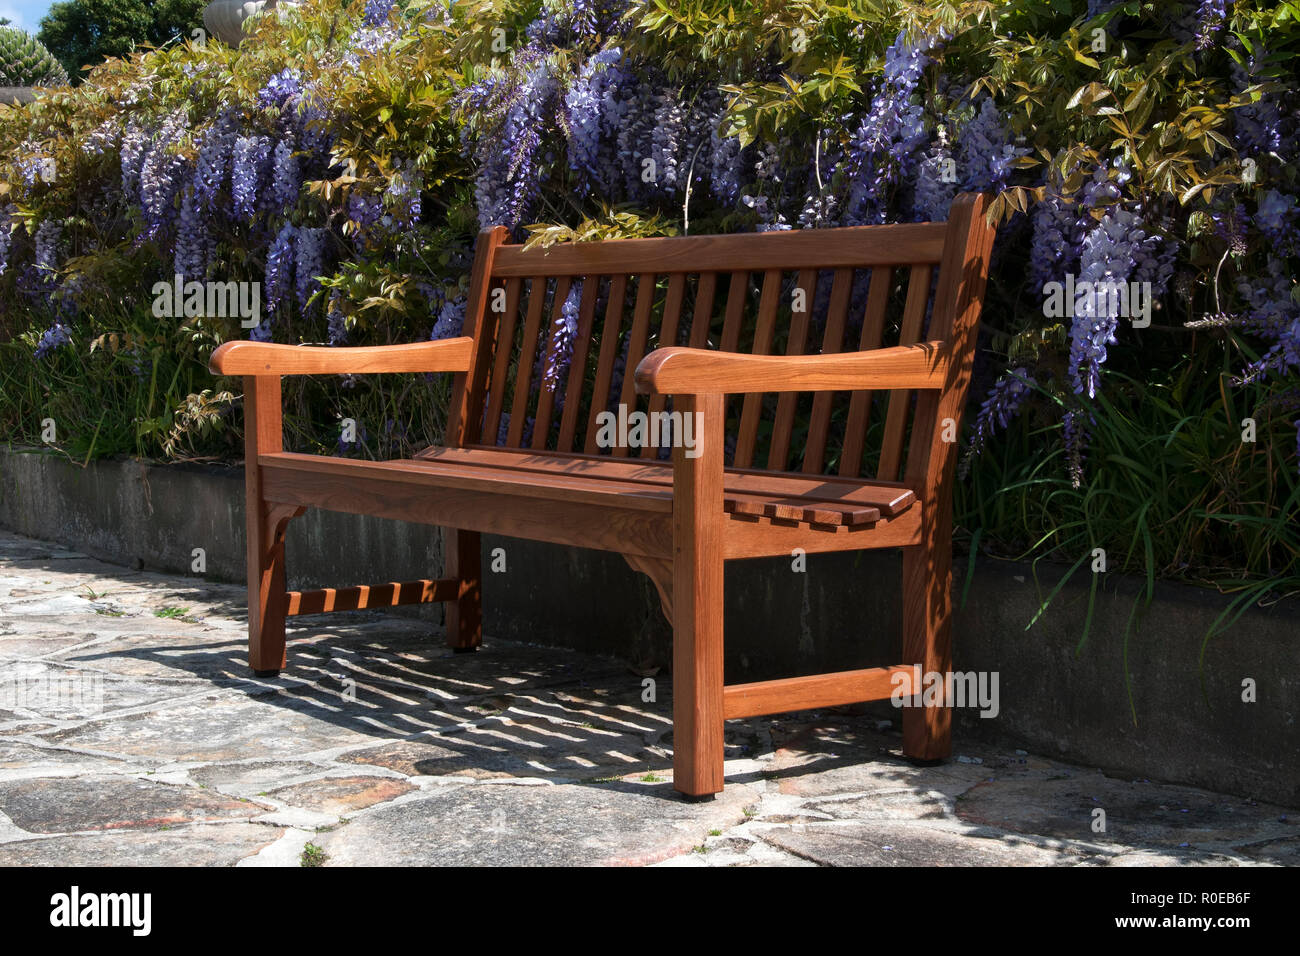 Garden Bench Australia Sydney Australia Wooden Garden Bench On Front Of A Wisteria Hedge